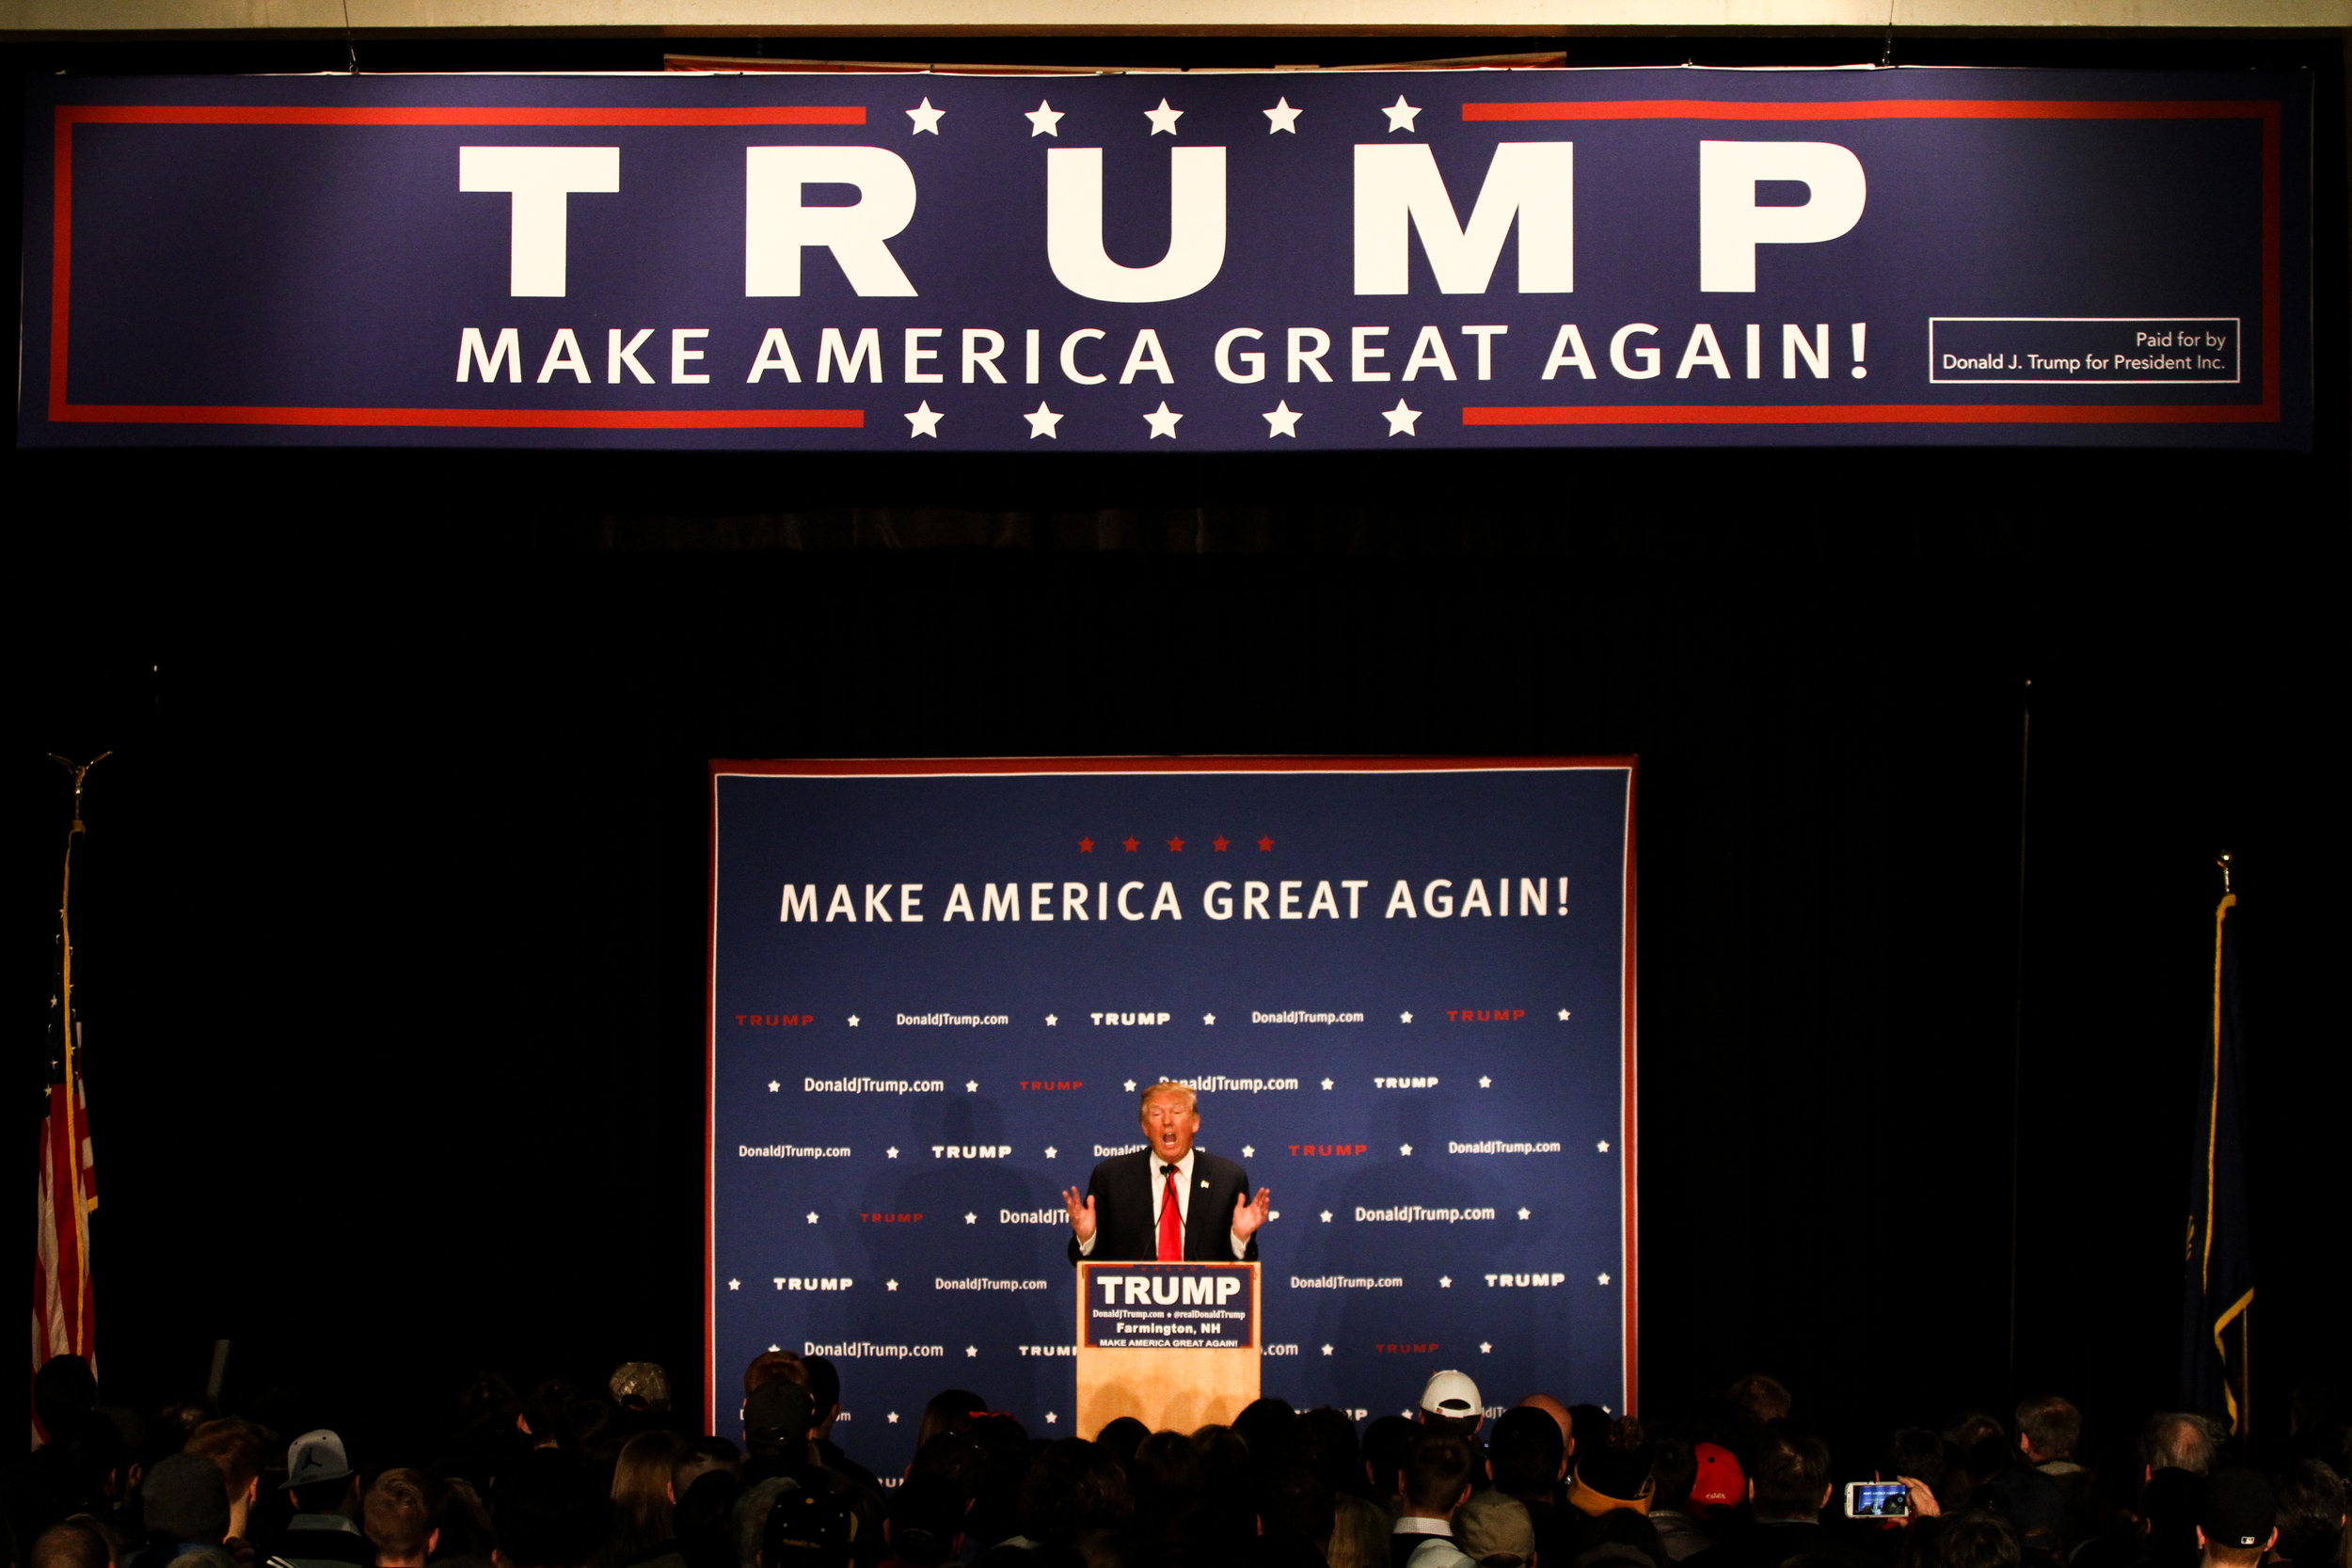 U.S. presidential candidate Donald Trump speaks to hundreds of supporters during a Donald J. Trump for President Rally at Farmington High School, 40 Thayer Dr., Farmington, NH on Jan. 26, 2016.